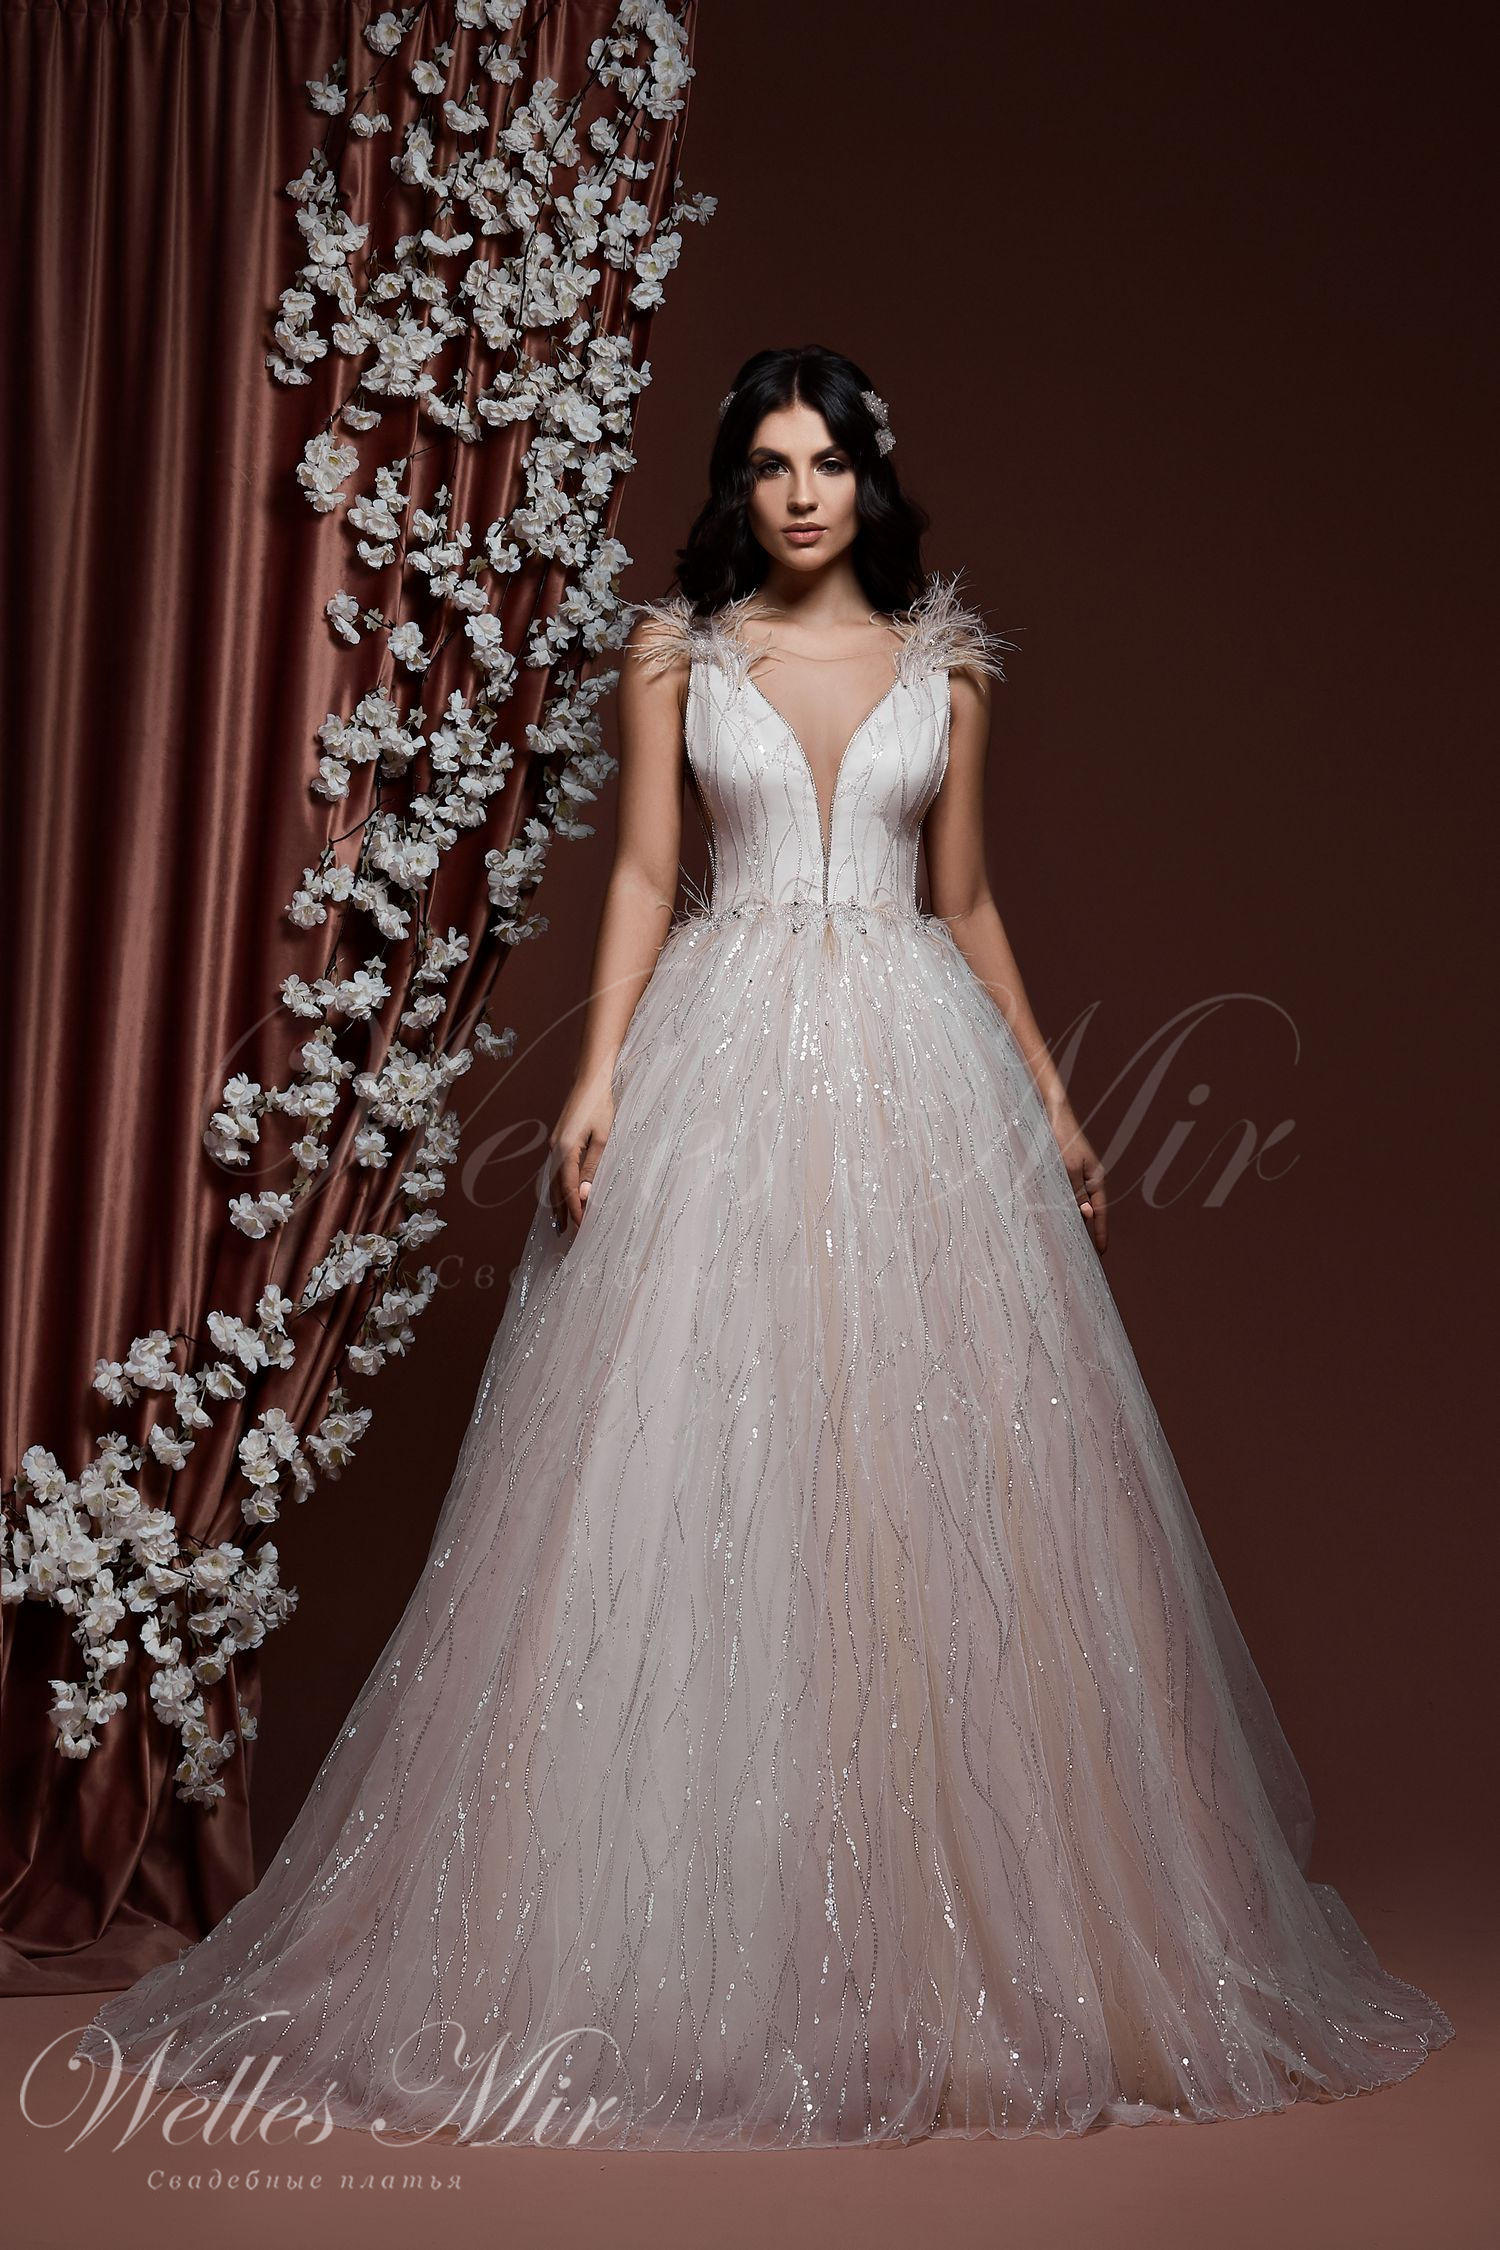 Wedding dresses 511